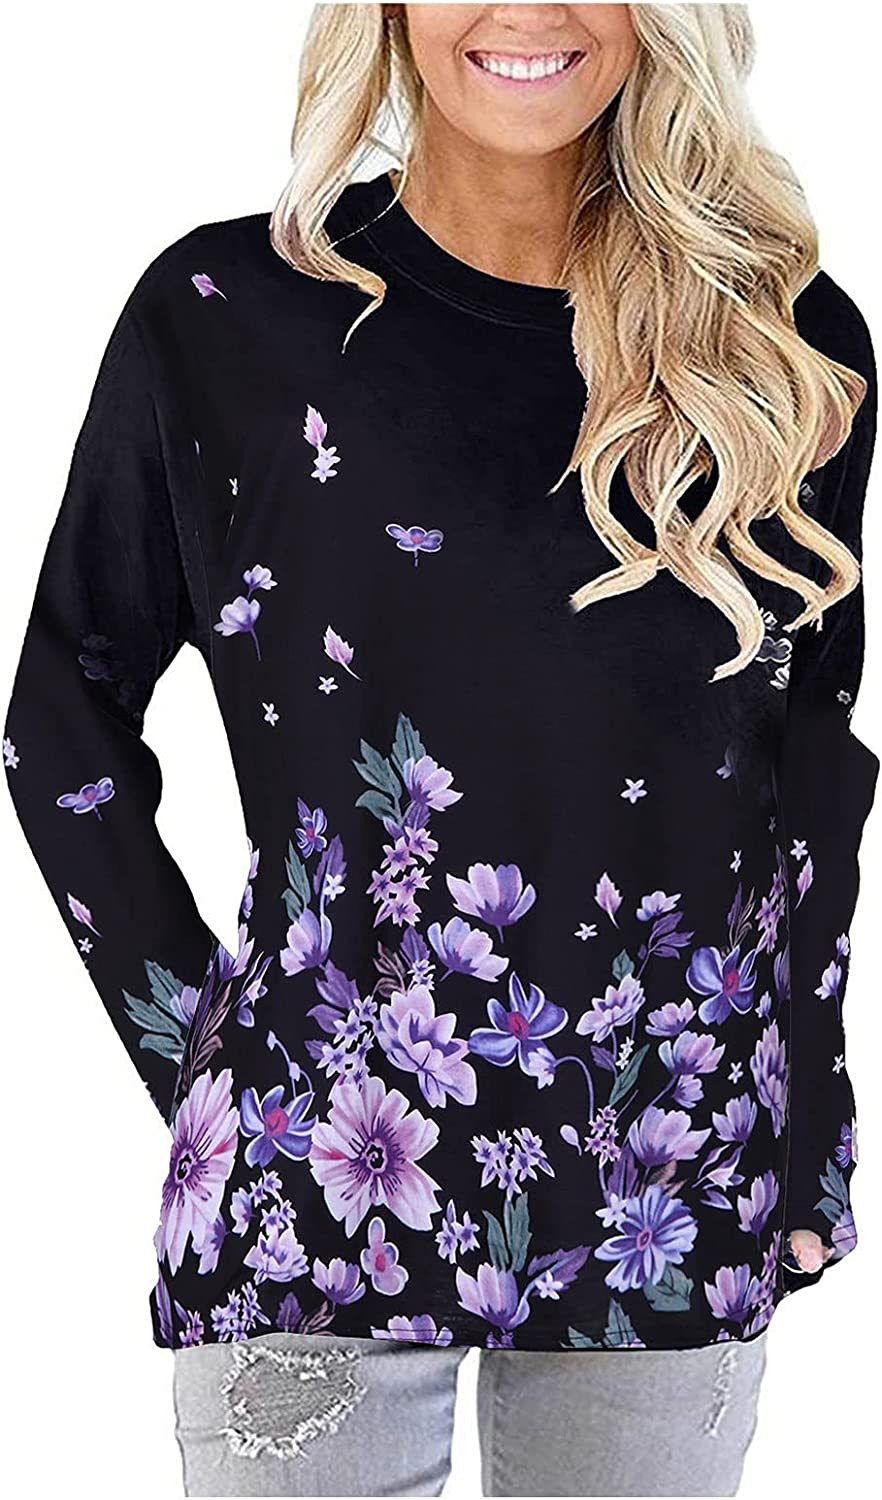 Women Printed Pocket Top Pullover Casual Round Neck Long Sleeve Shirts Autumn Winter Comfortable Tunics